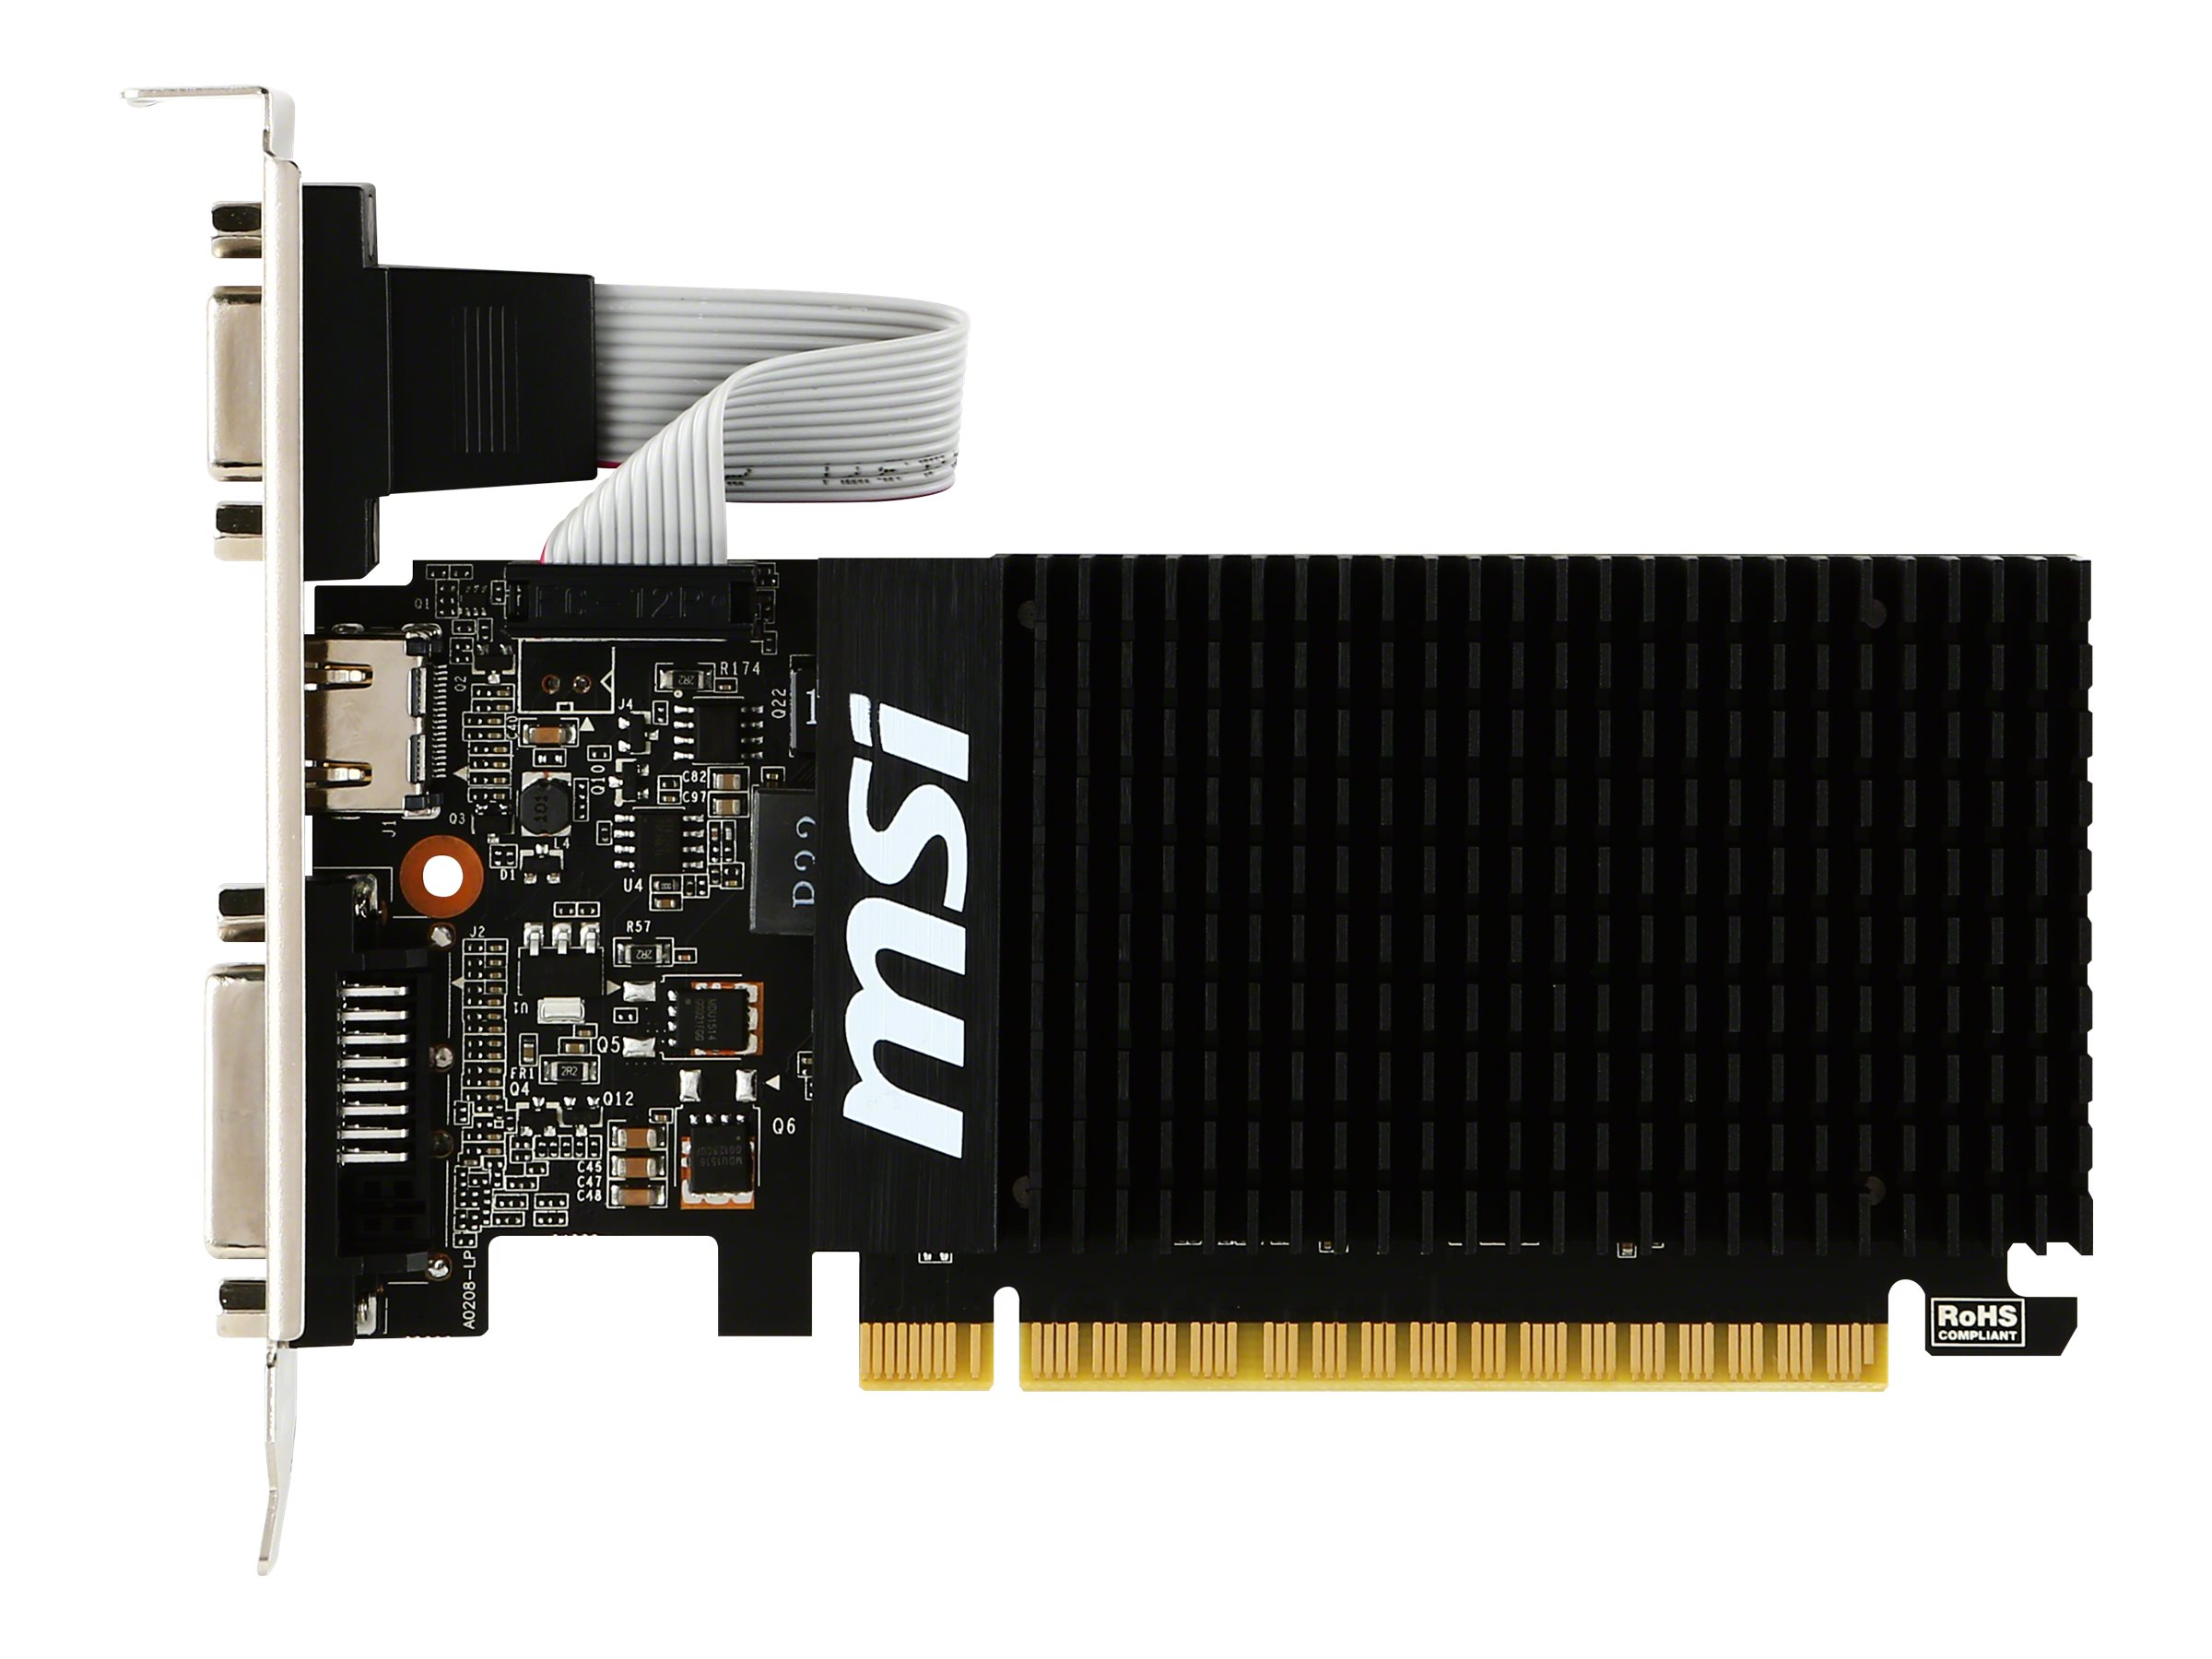 Microstar GeForce GT 710 PCIe 2.0 x8 Graphics Card, 2GB DDR3